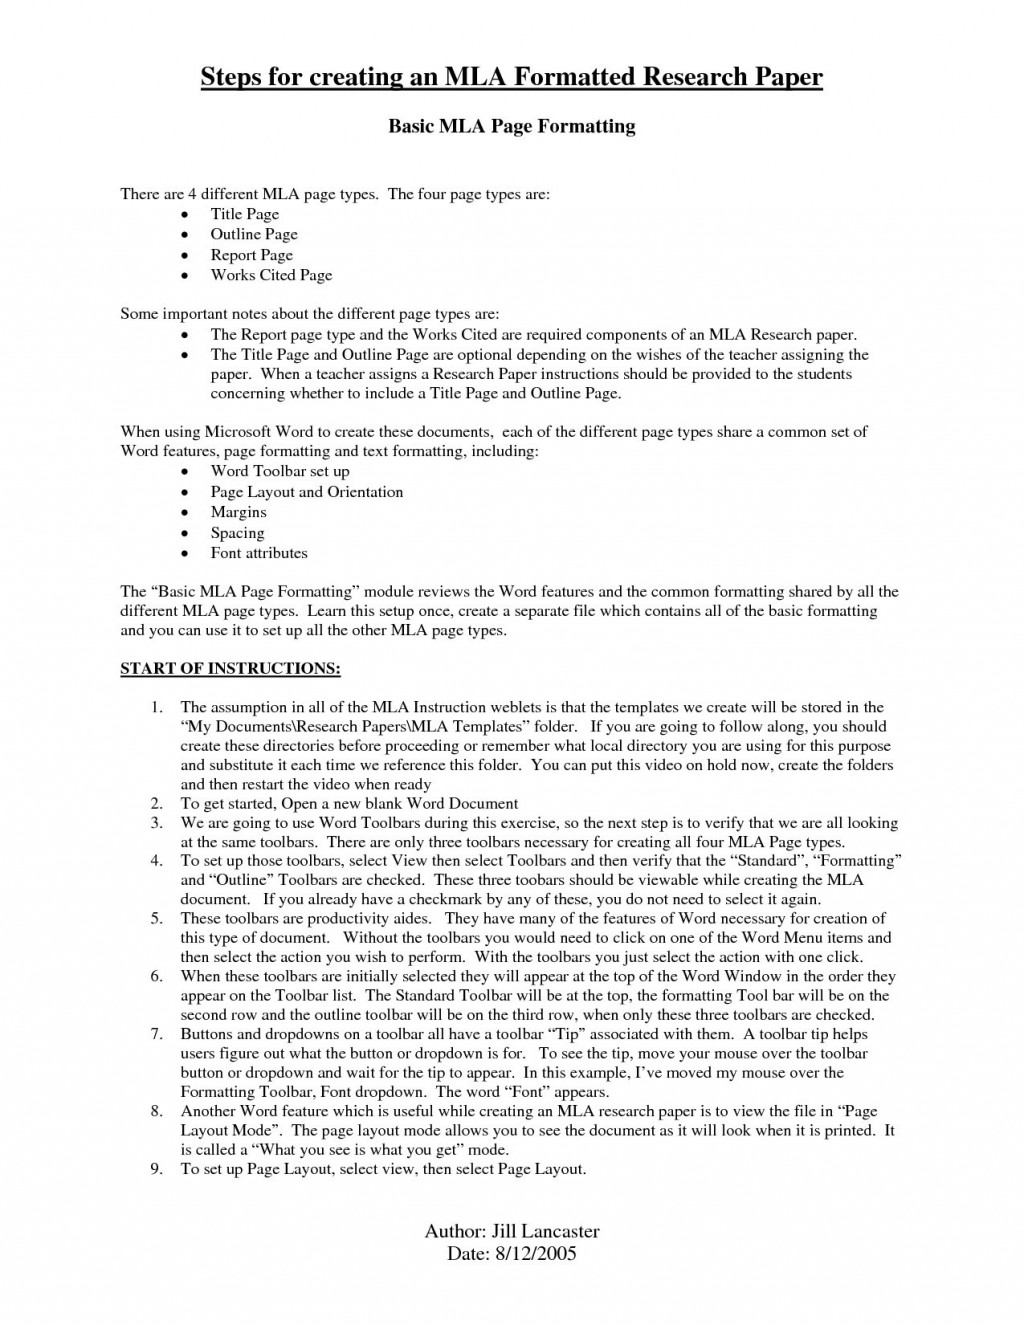 010 Essay Example How To Write Research Mla Format Works Cited Scarlet Letter Fresh Citation New Act Conclusions The Excellent A Proposal Paper In Apa Large